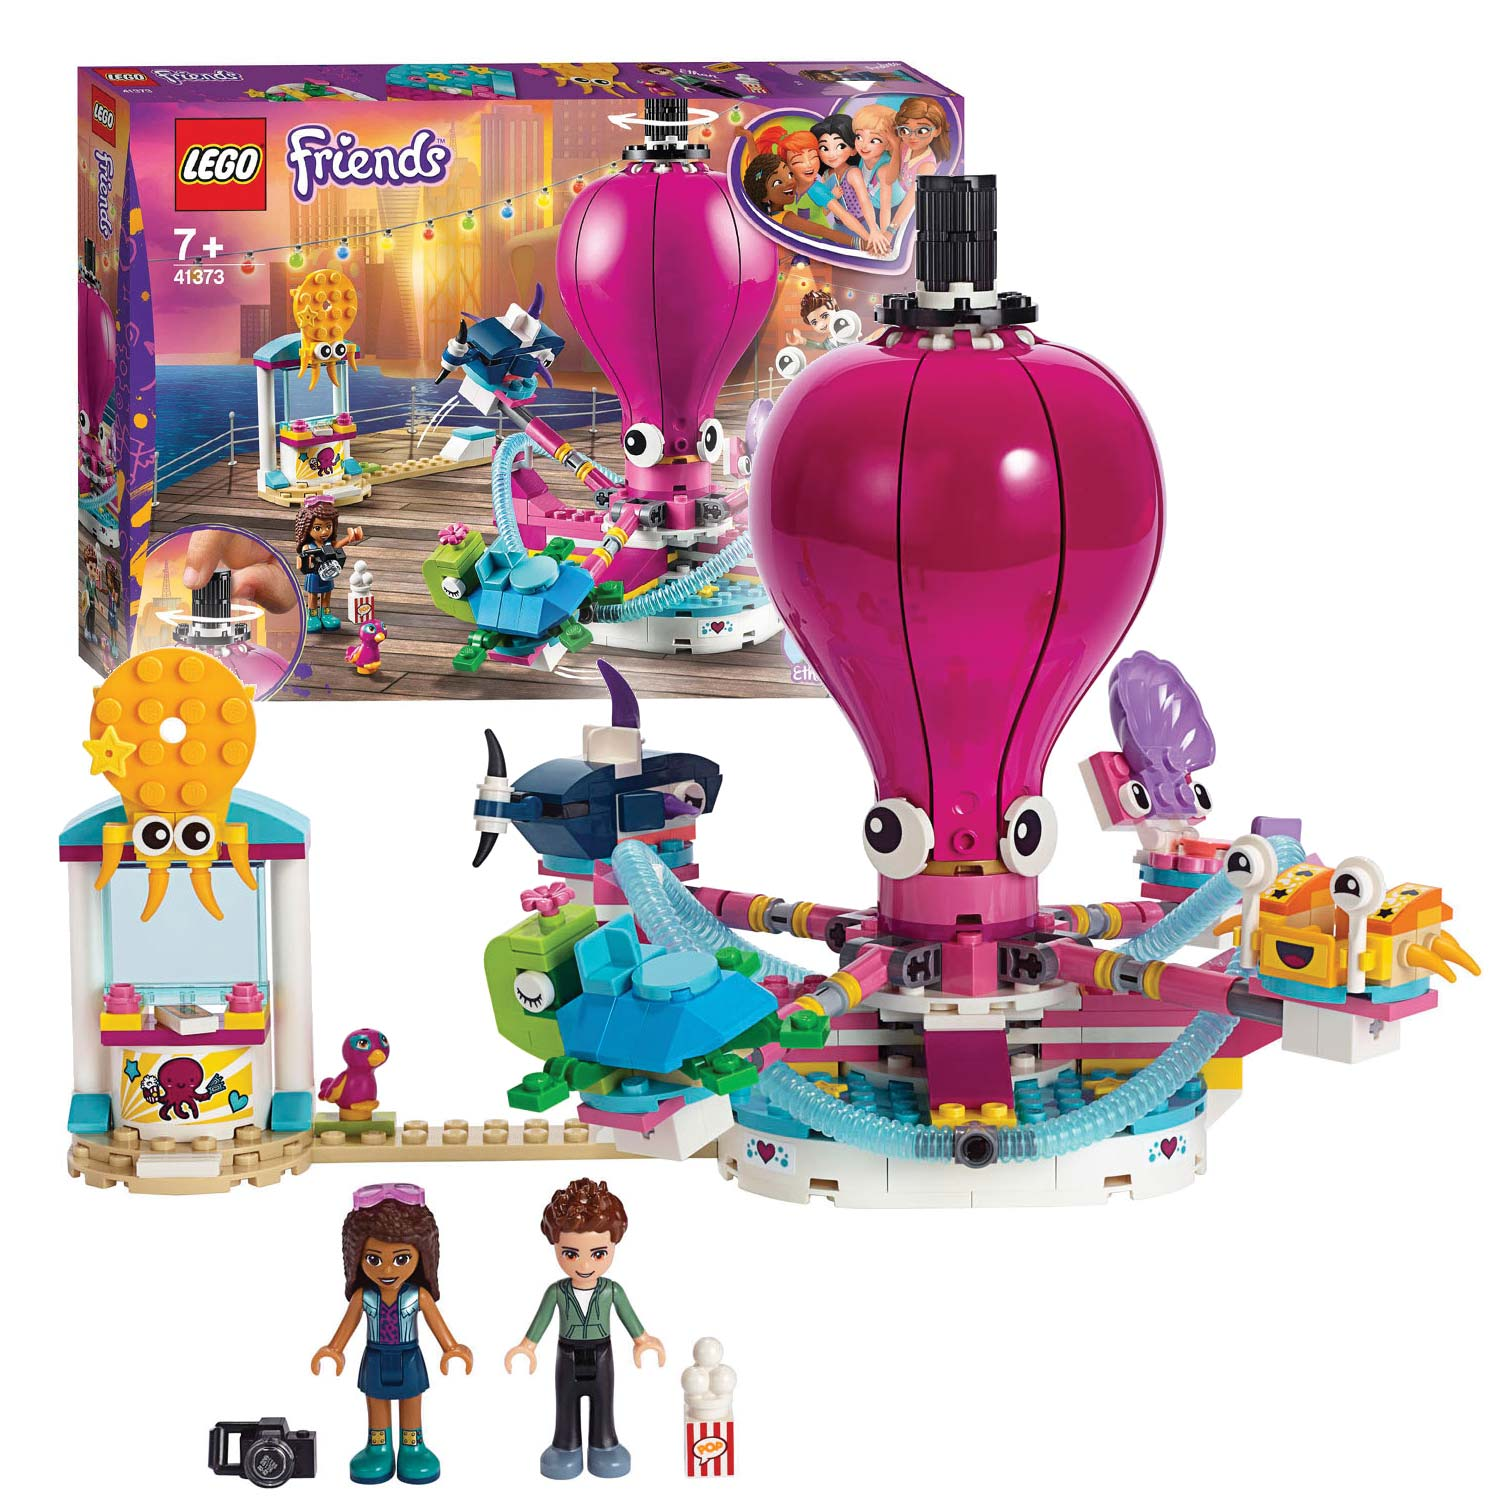 LEGO Friends 41373 Gave Octopusrit